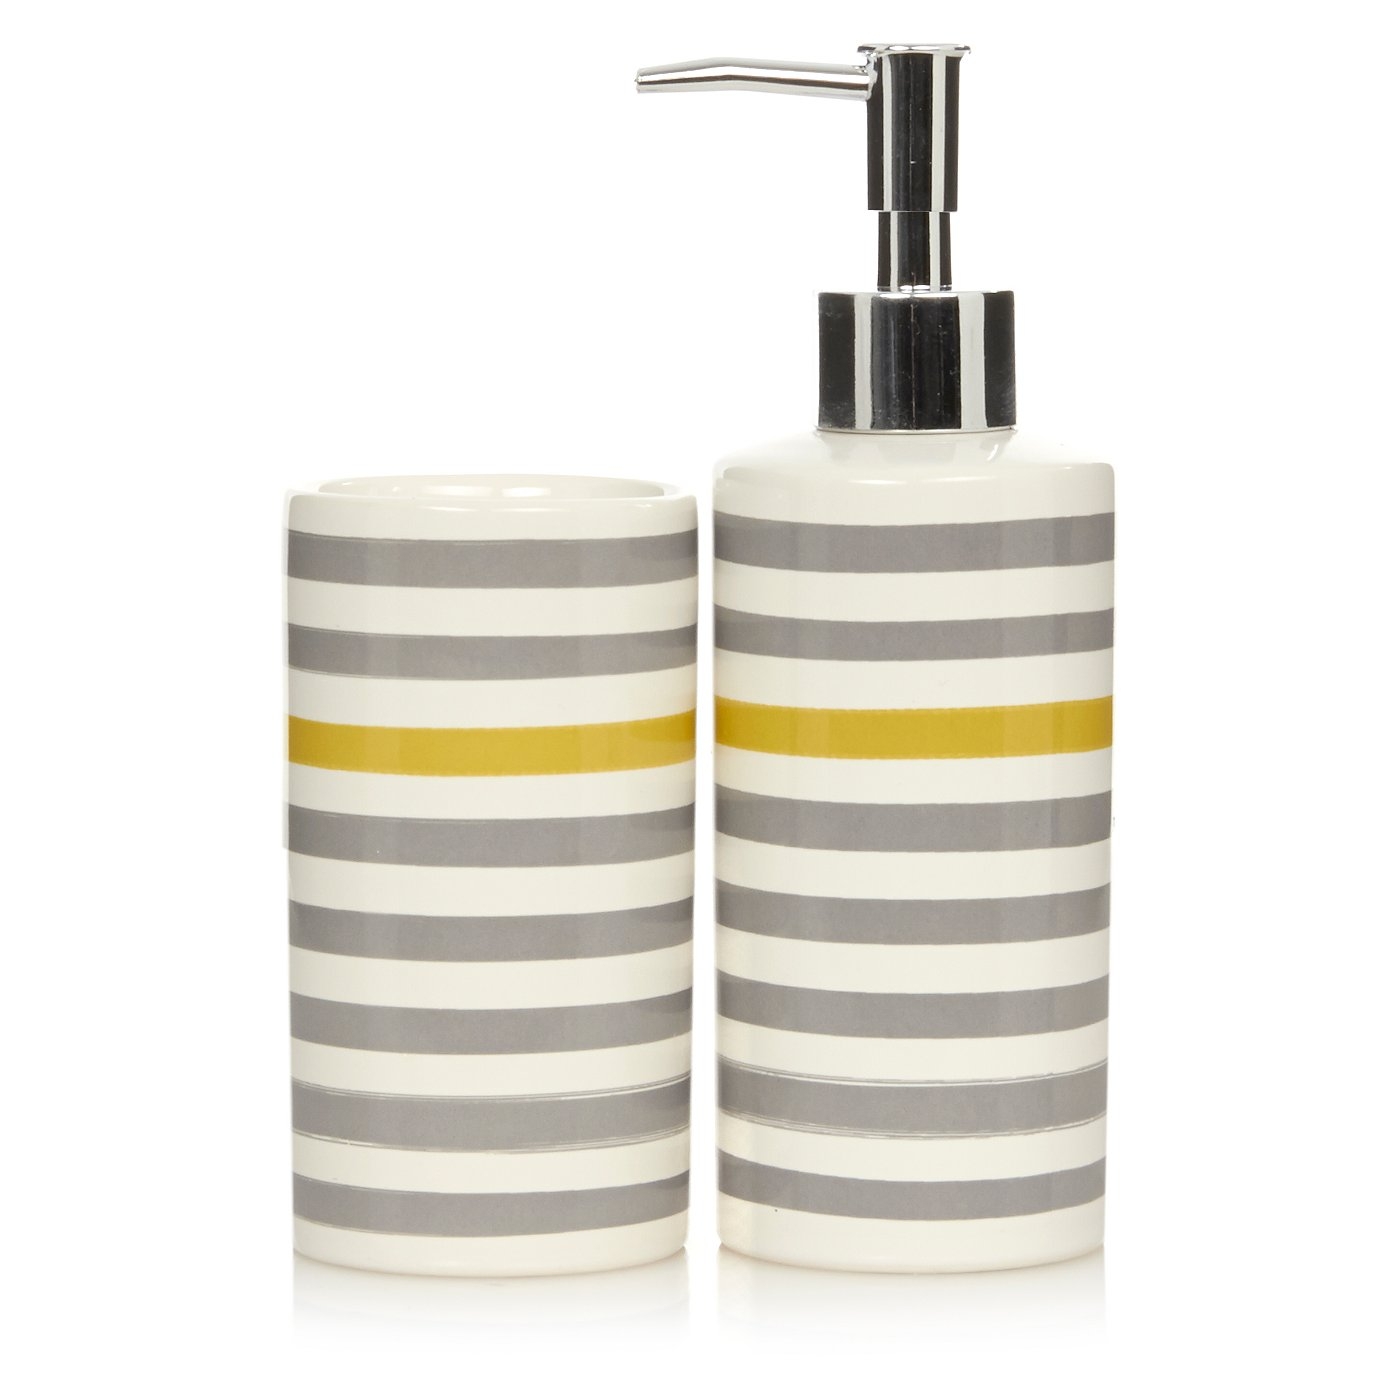 George Home Grey and Yellow Stripe Bathroom Accessories  Loading zoom. George Home Grey and Yellow Stripe Bathroom Accessories   Bathroom